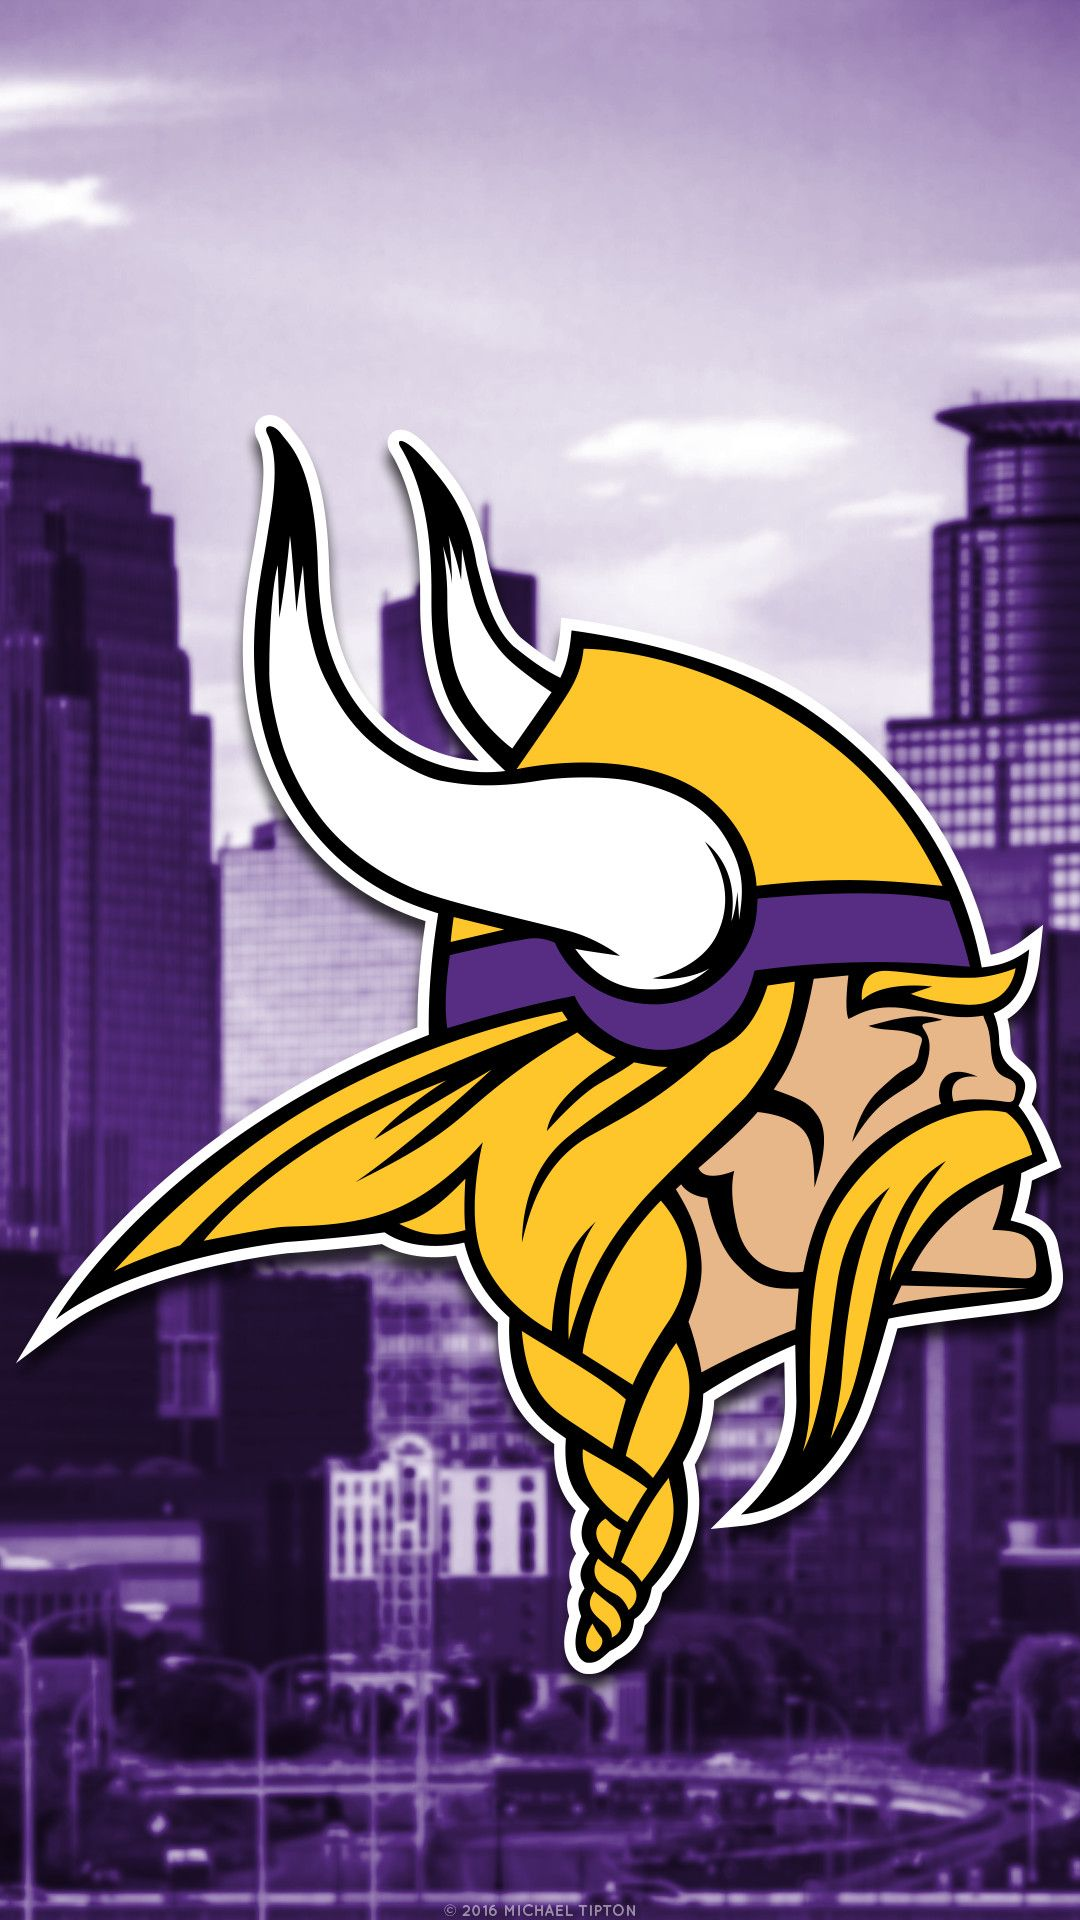 1080x1920 Minnesota Vikings Phone Wallpaper (71+ images)